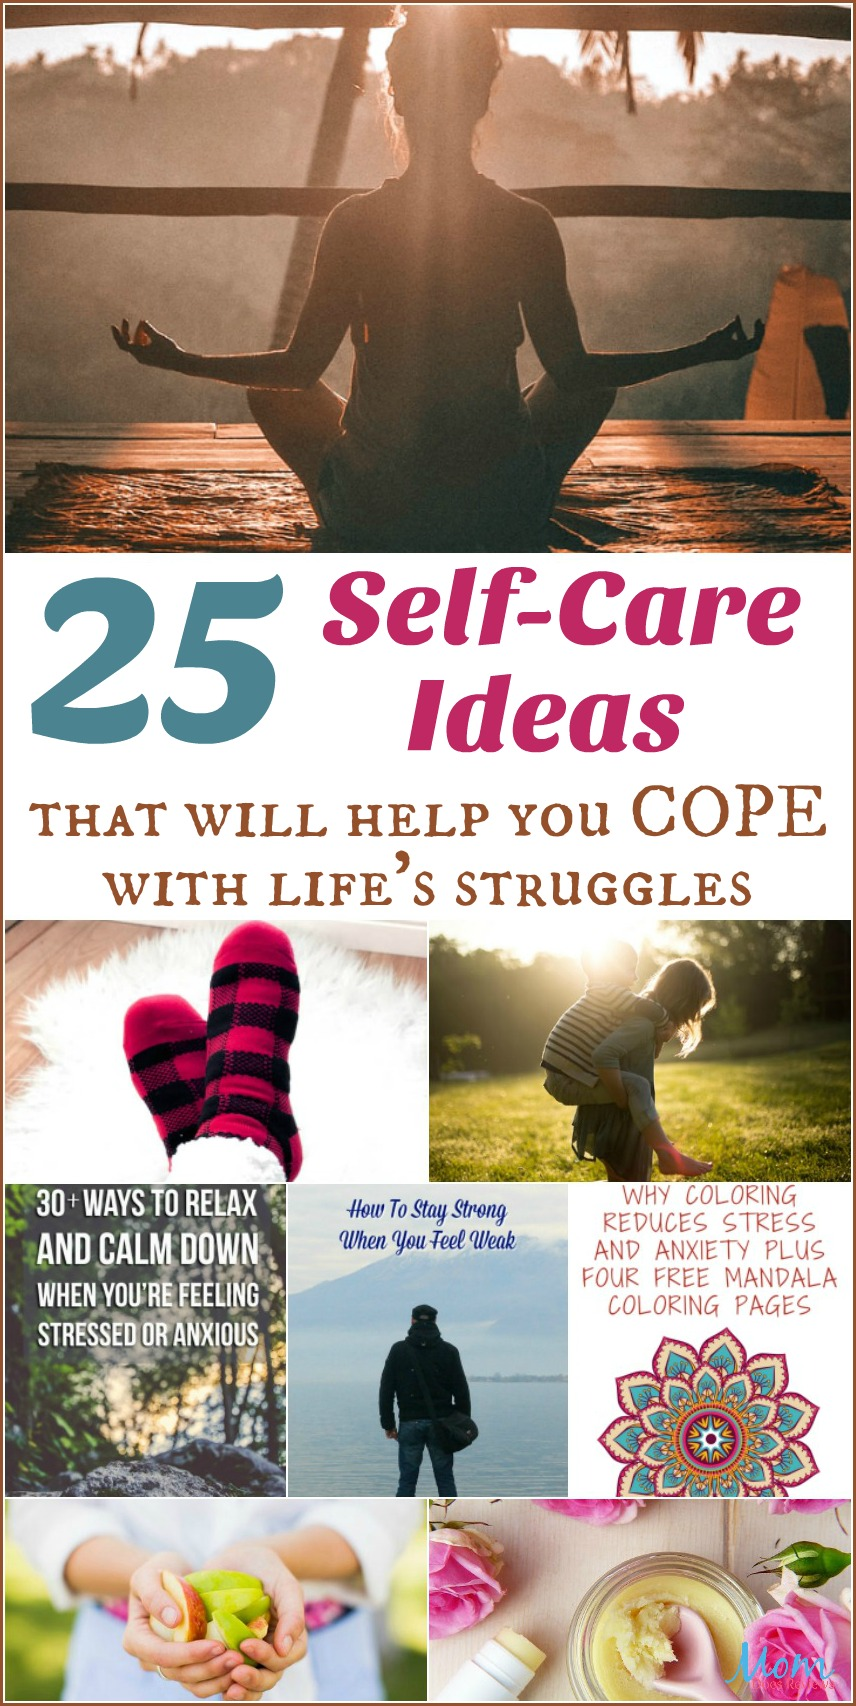 25 Self-Care Ideas that Will Help You Cope with Life's Struggles #selfcare #health #life